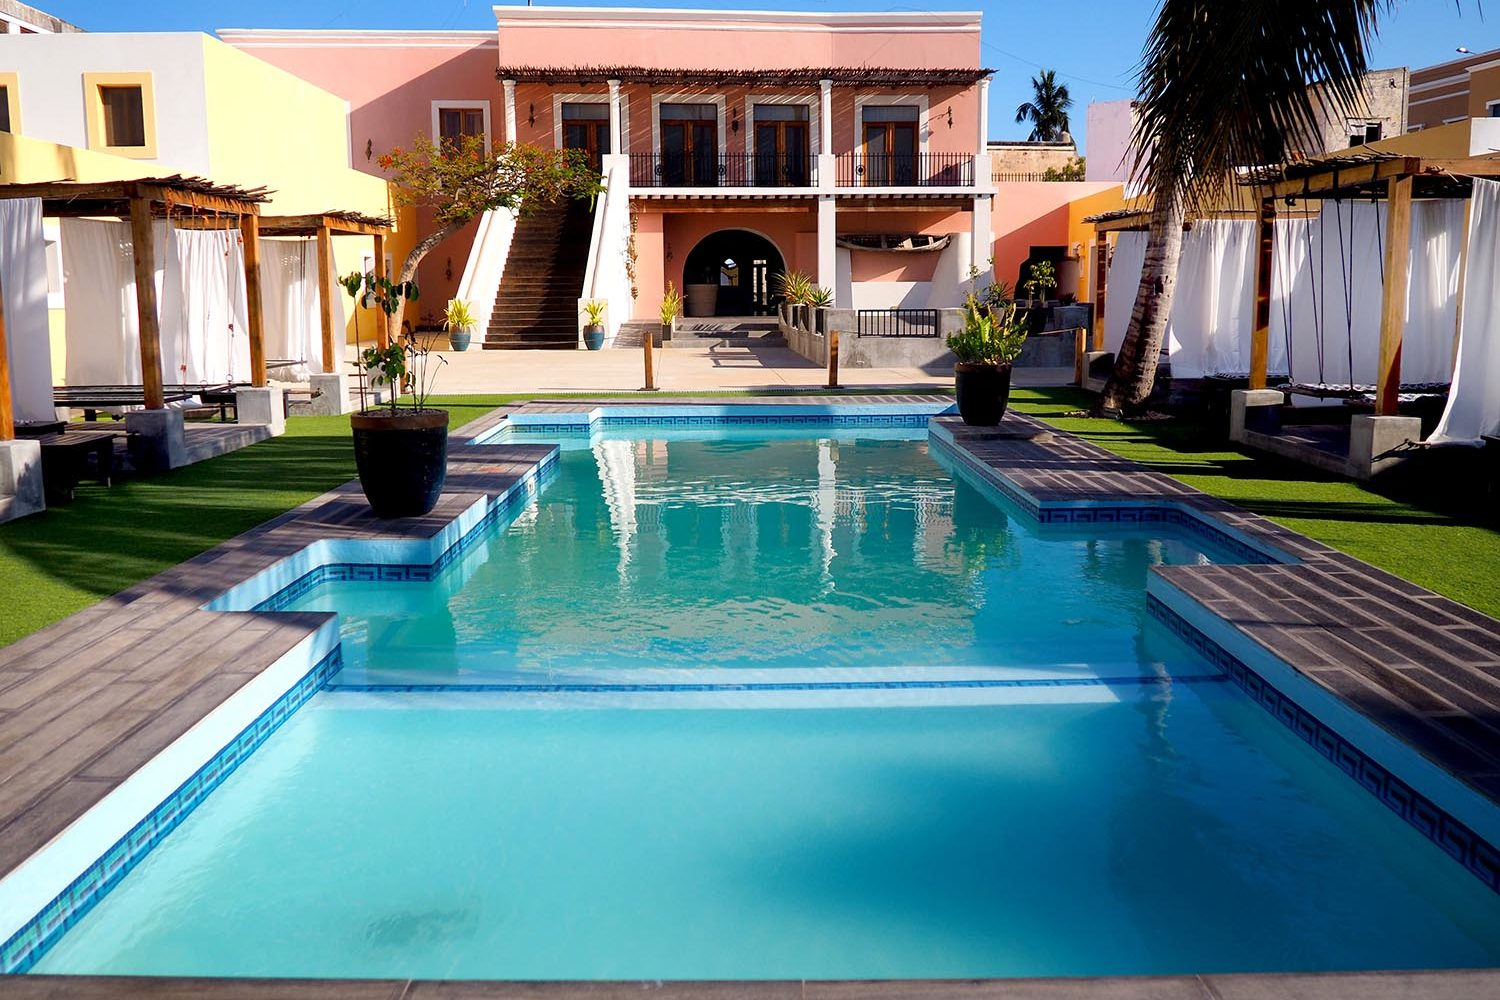 feitoria boutique hotel ilha-de-mozambique-lodges-zambia-in-style-luxurious-pool-deck